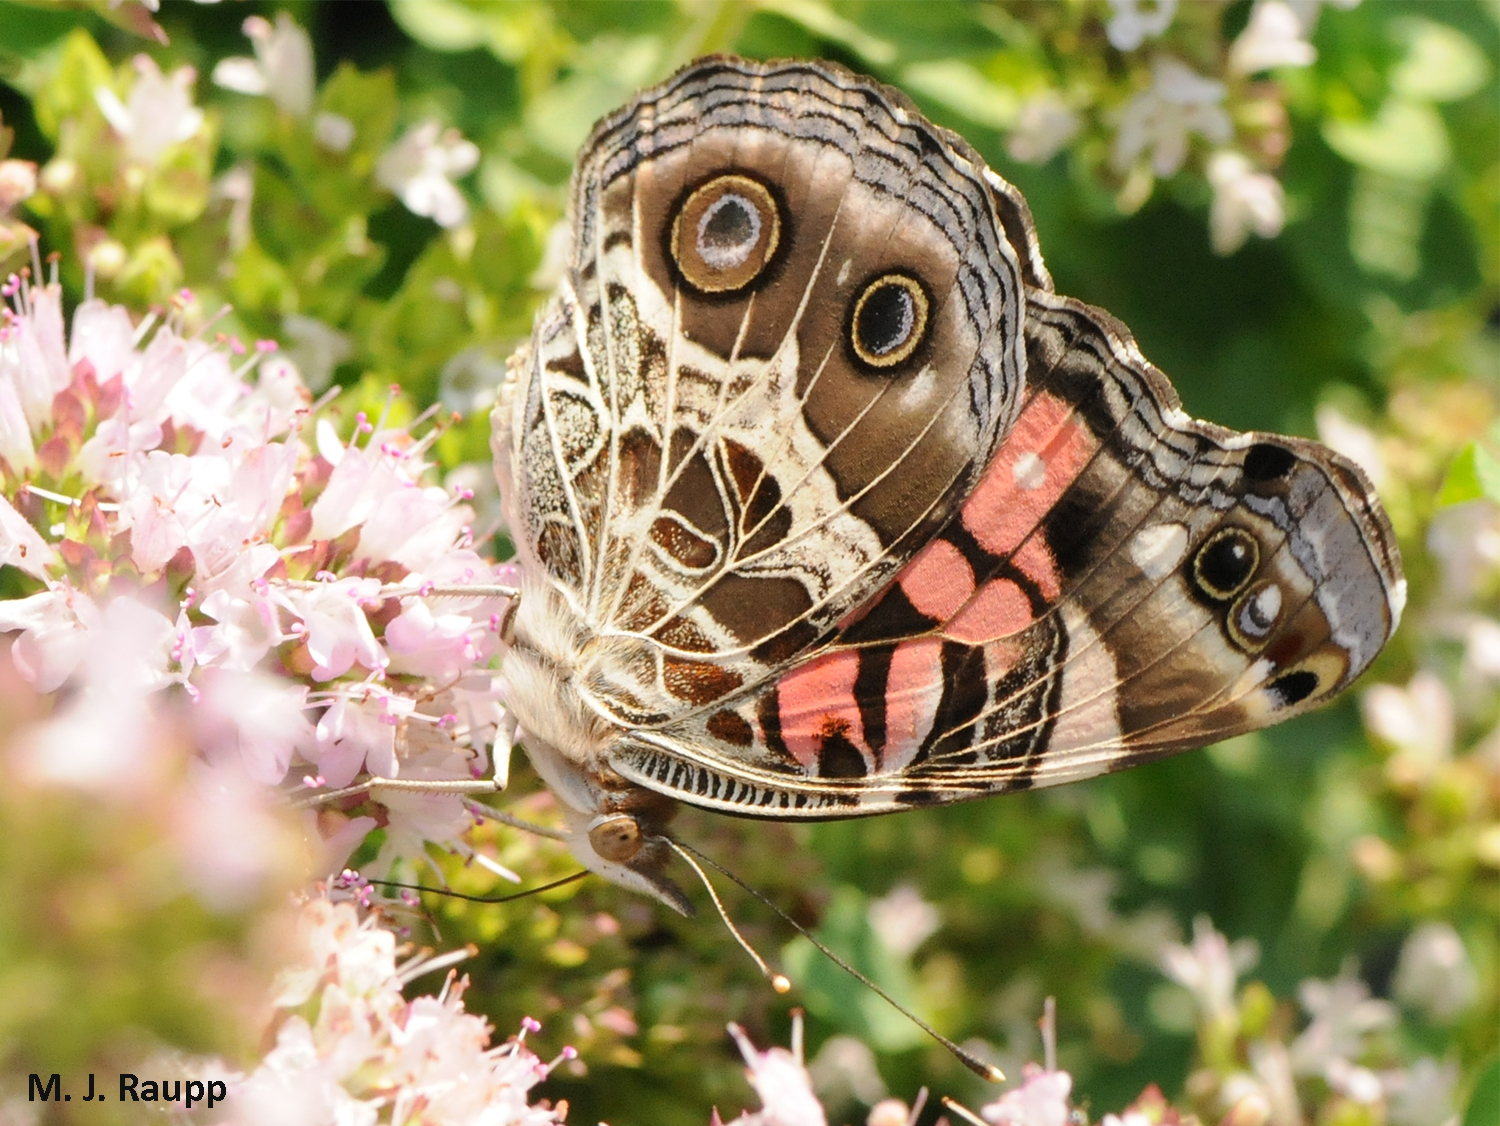 Whether upside down or right side up, the American Painted Lady is one gorgeous butterfly.